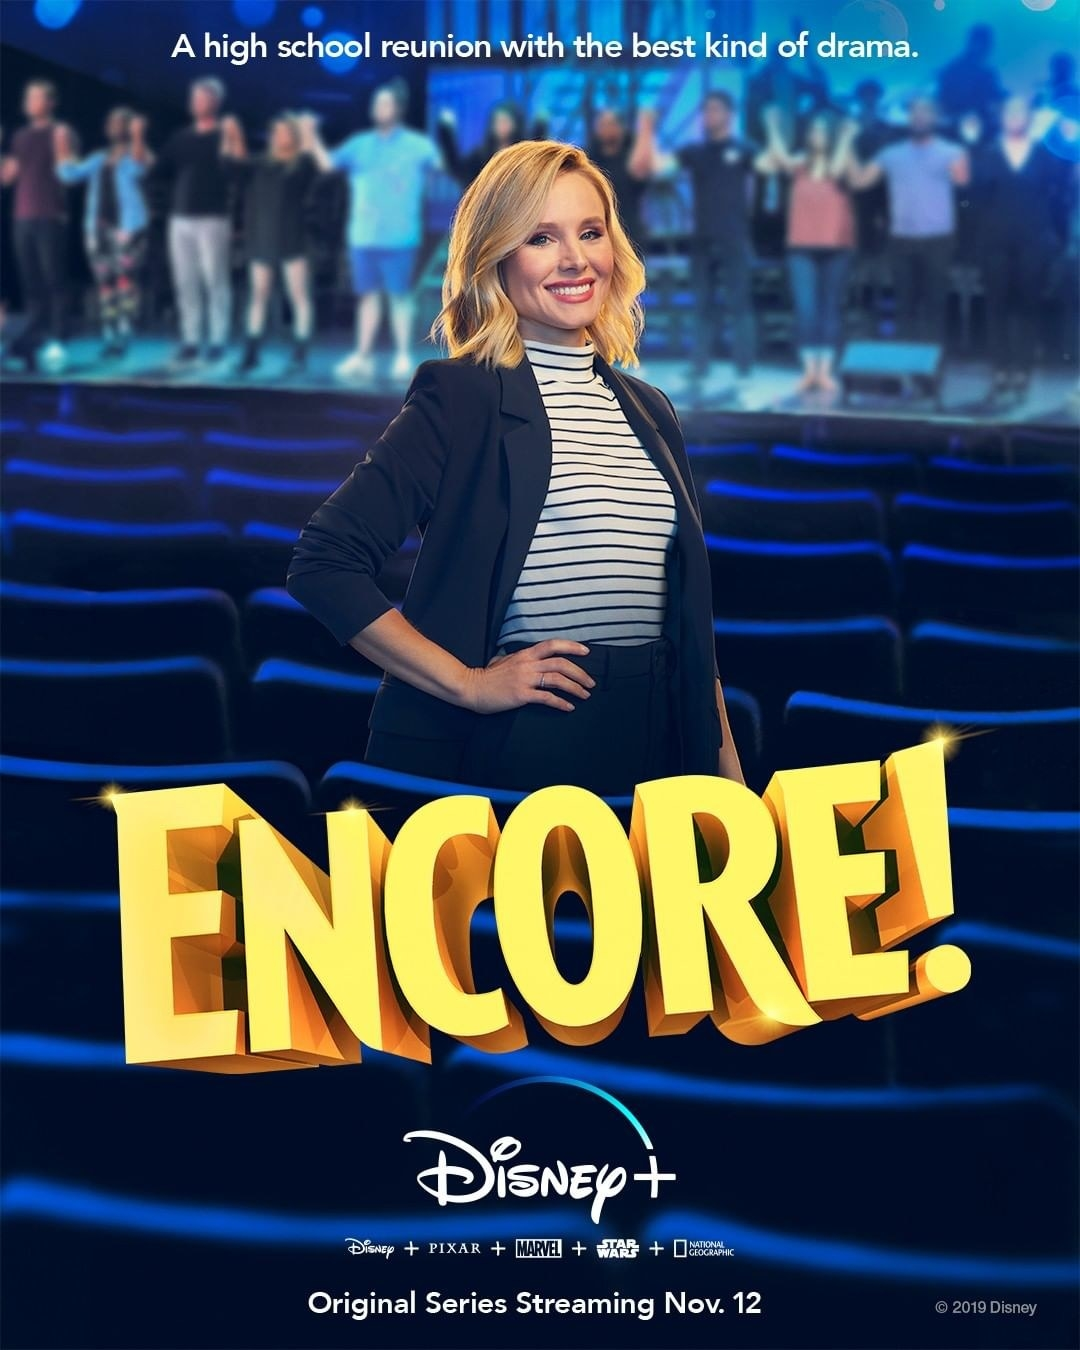 a poster of kristen belle promoting encore!